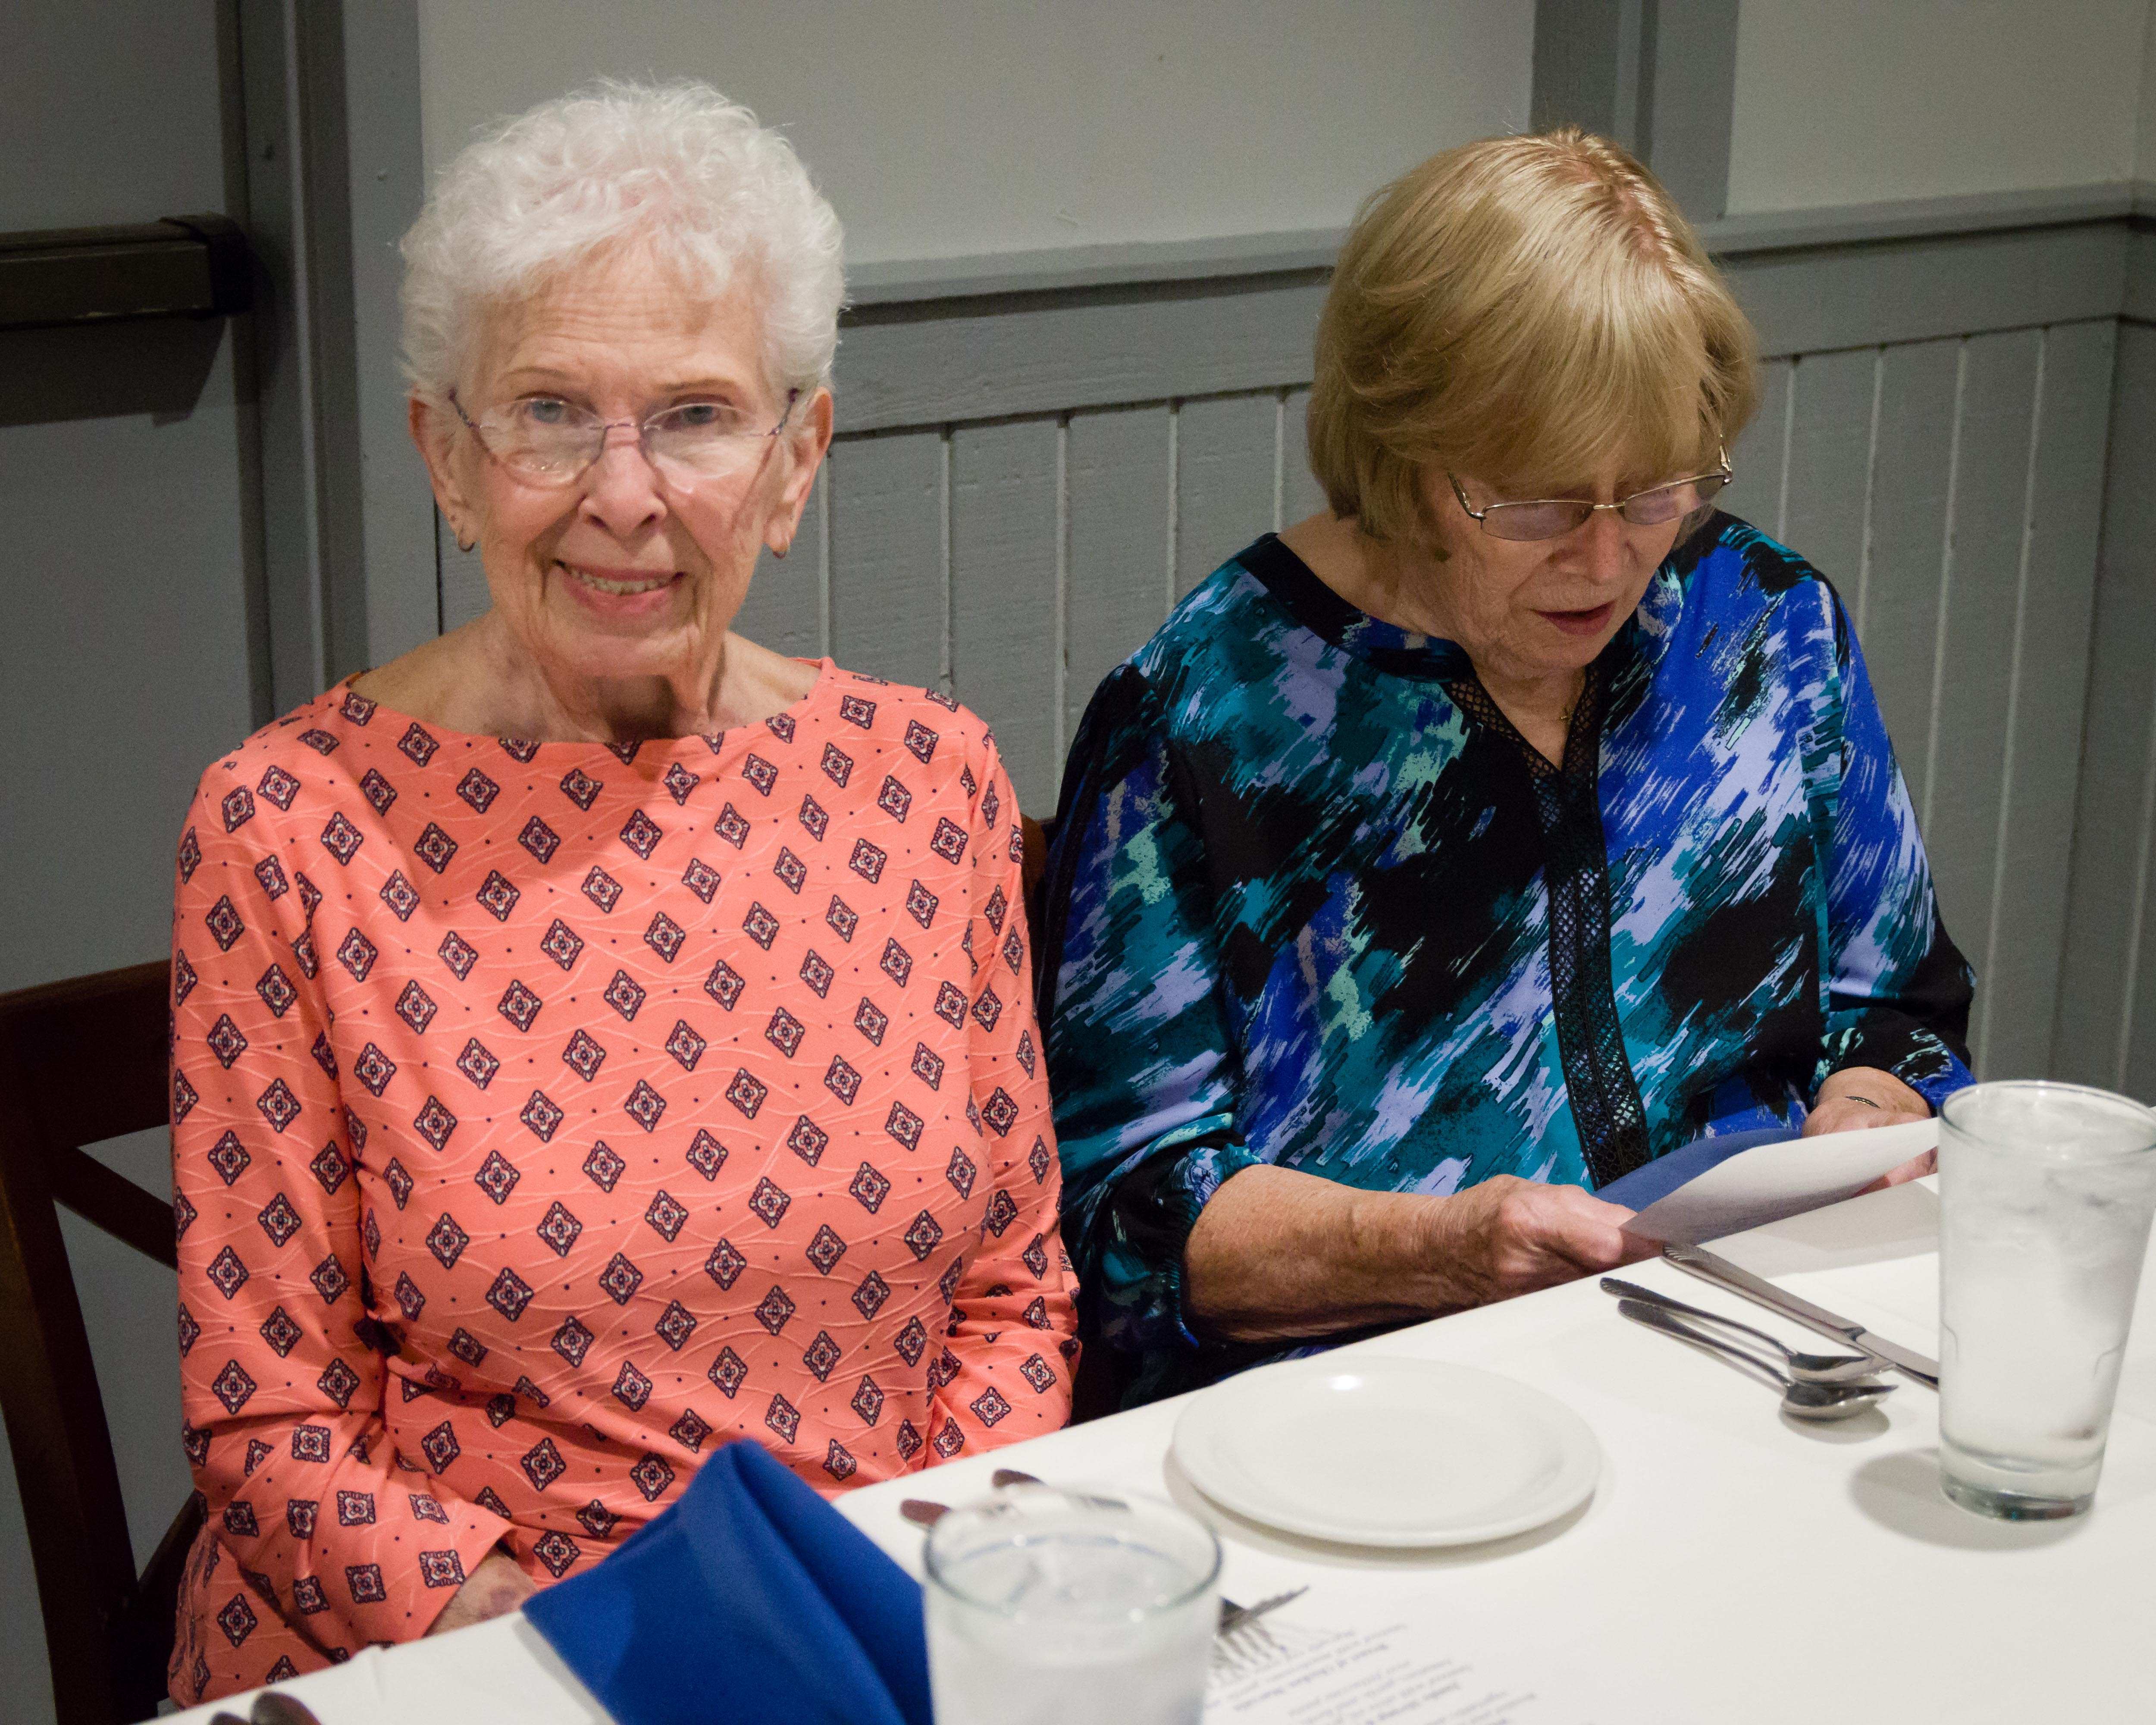 A smile from Arlene while Carol reviews the menu